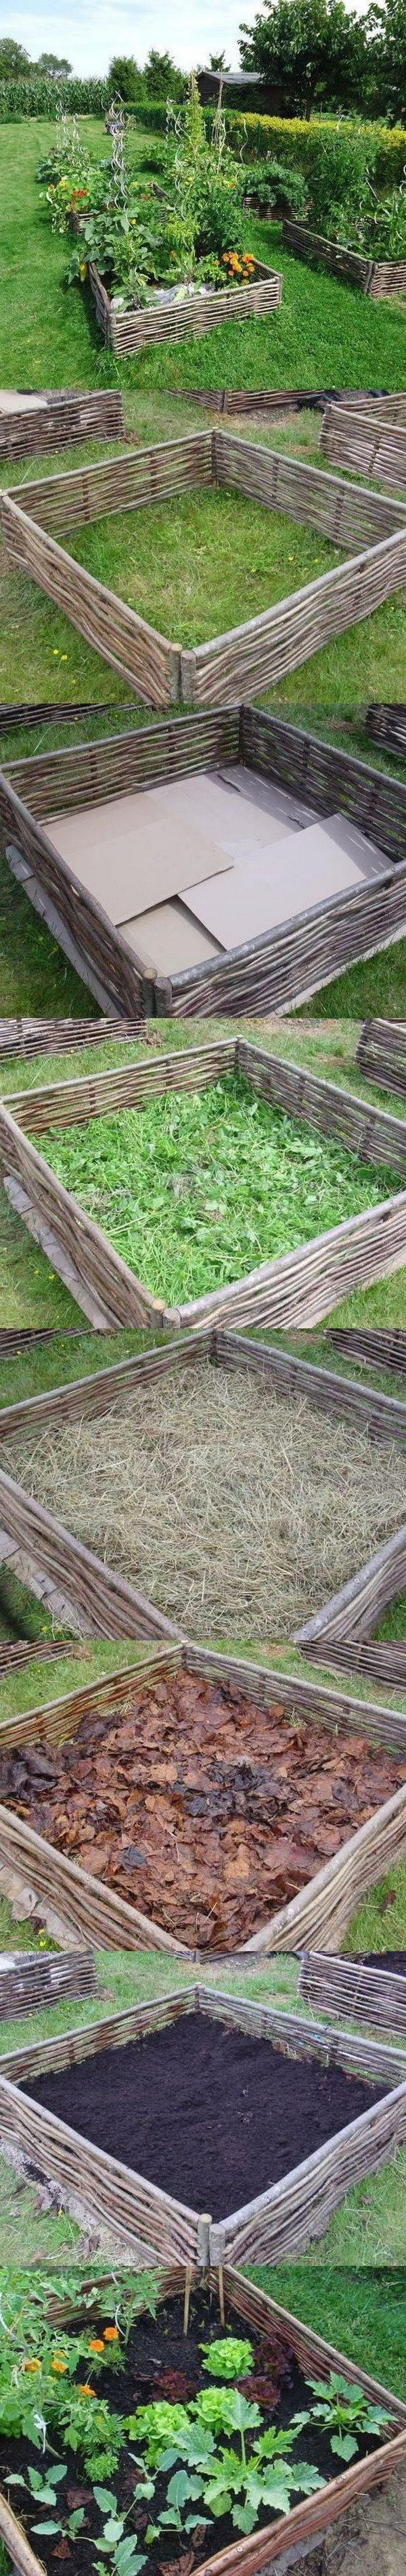 30 raised garden bed ideas gardens beautiful and for Beautiful raised gardens